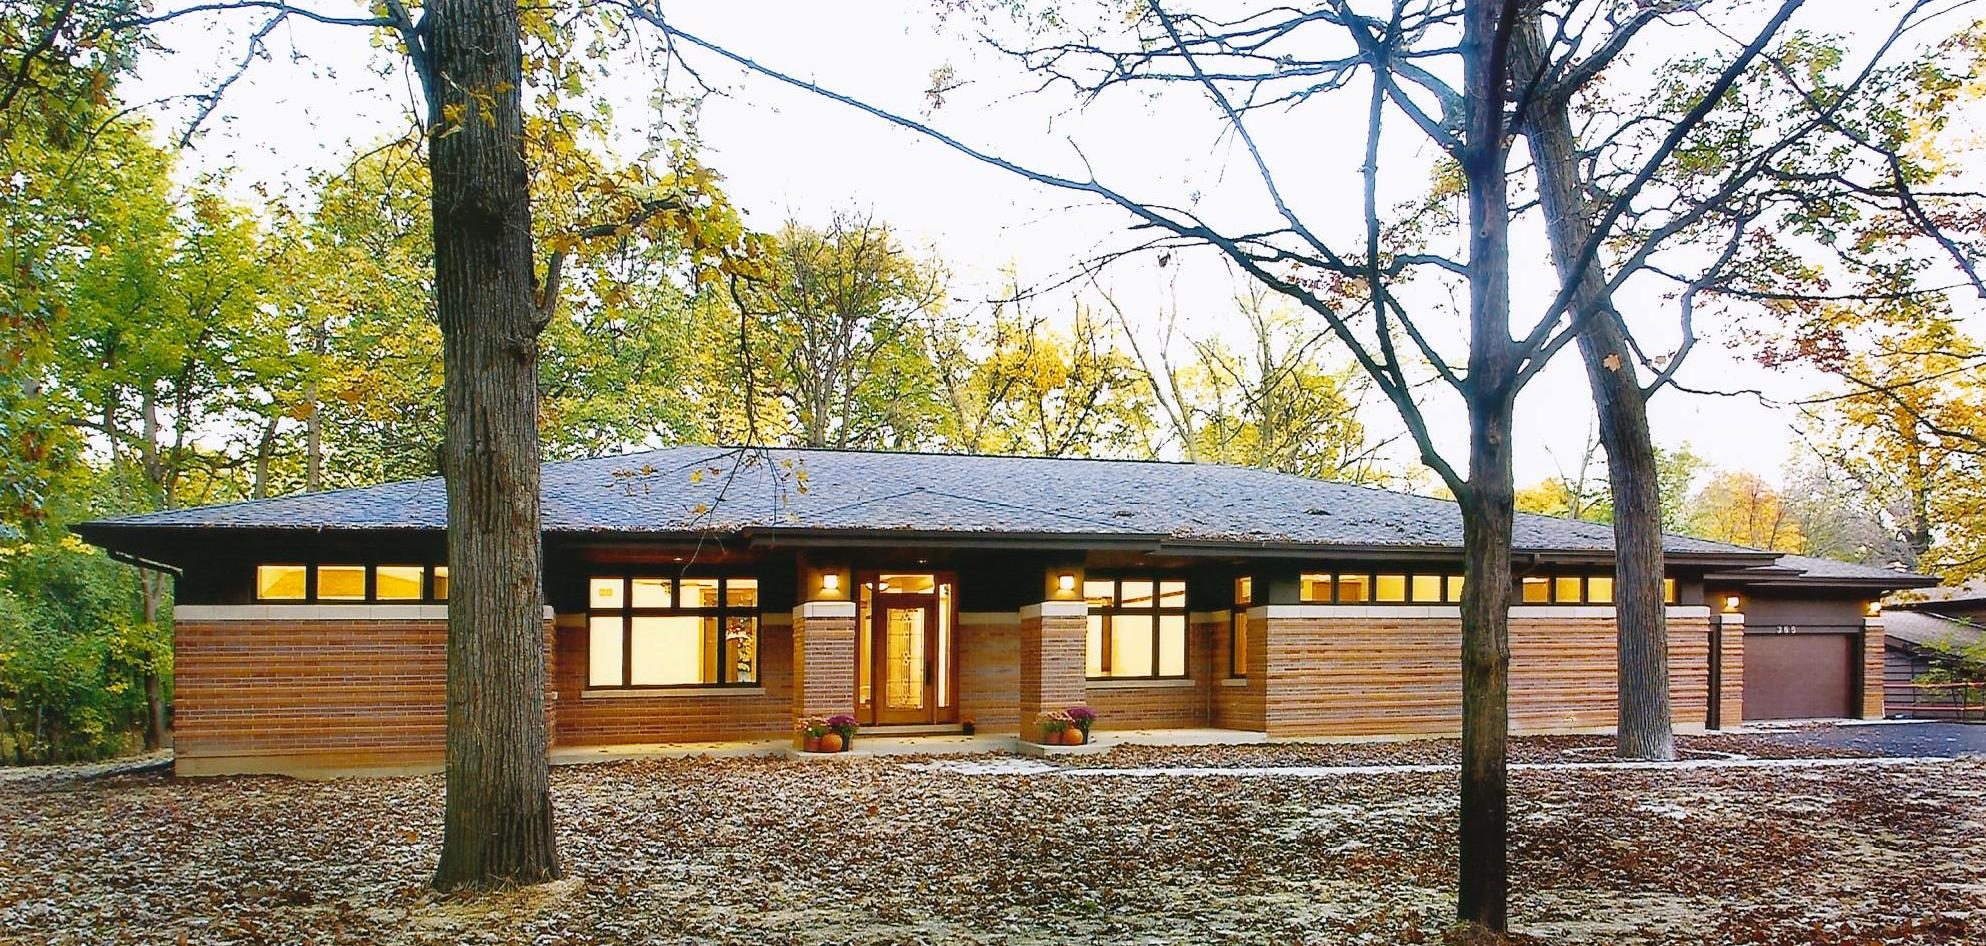 Frank Lloyd Wright Prairie Houses frank lloyd wright inspired ranch house | prairiearchitect